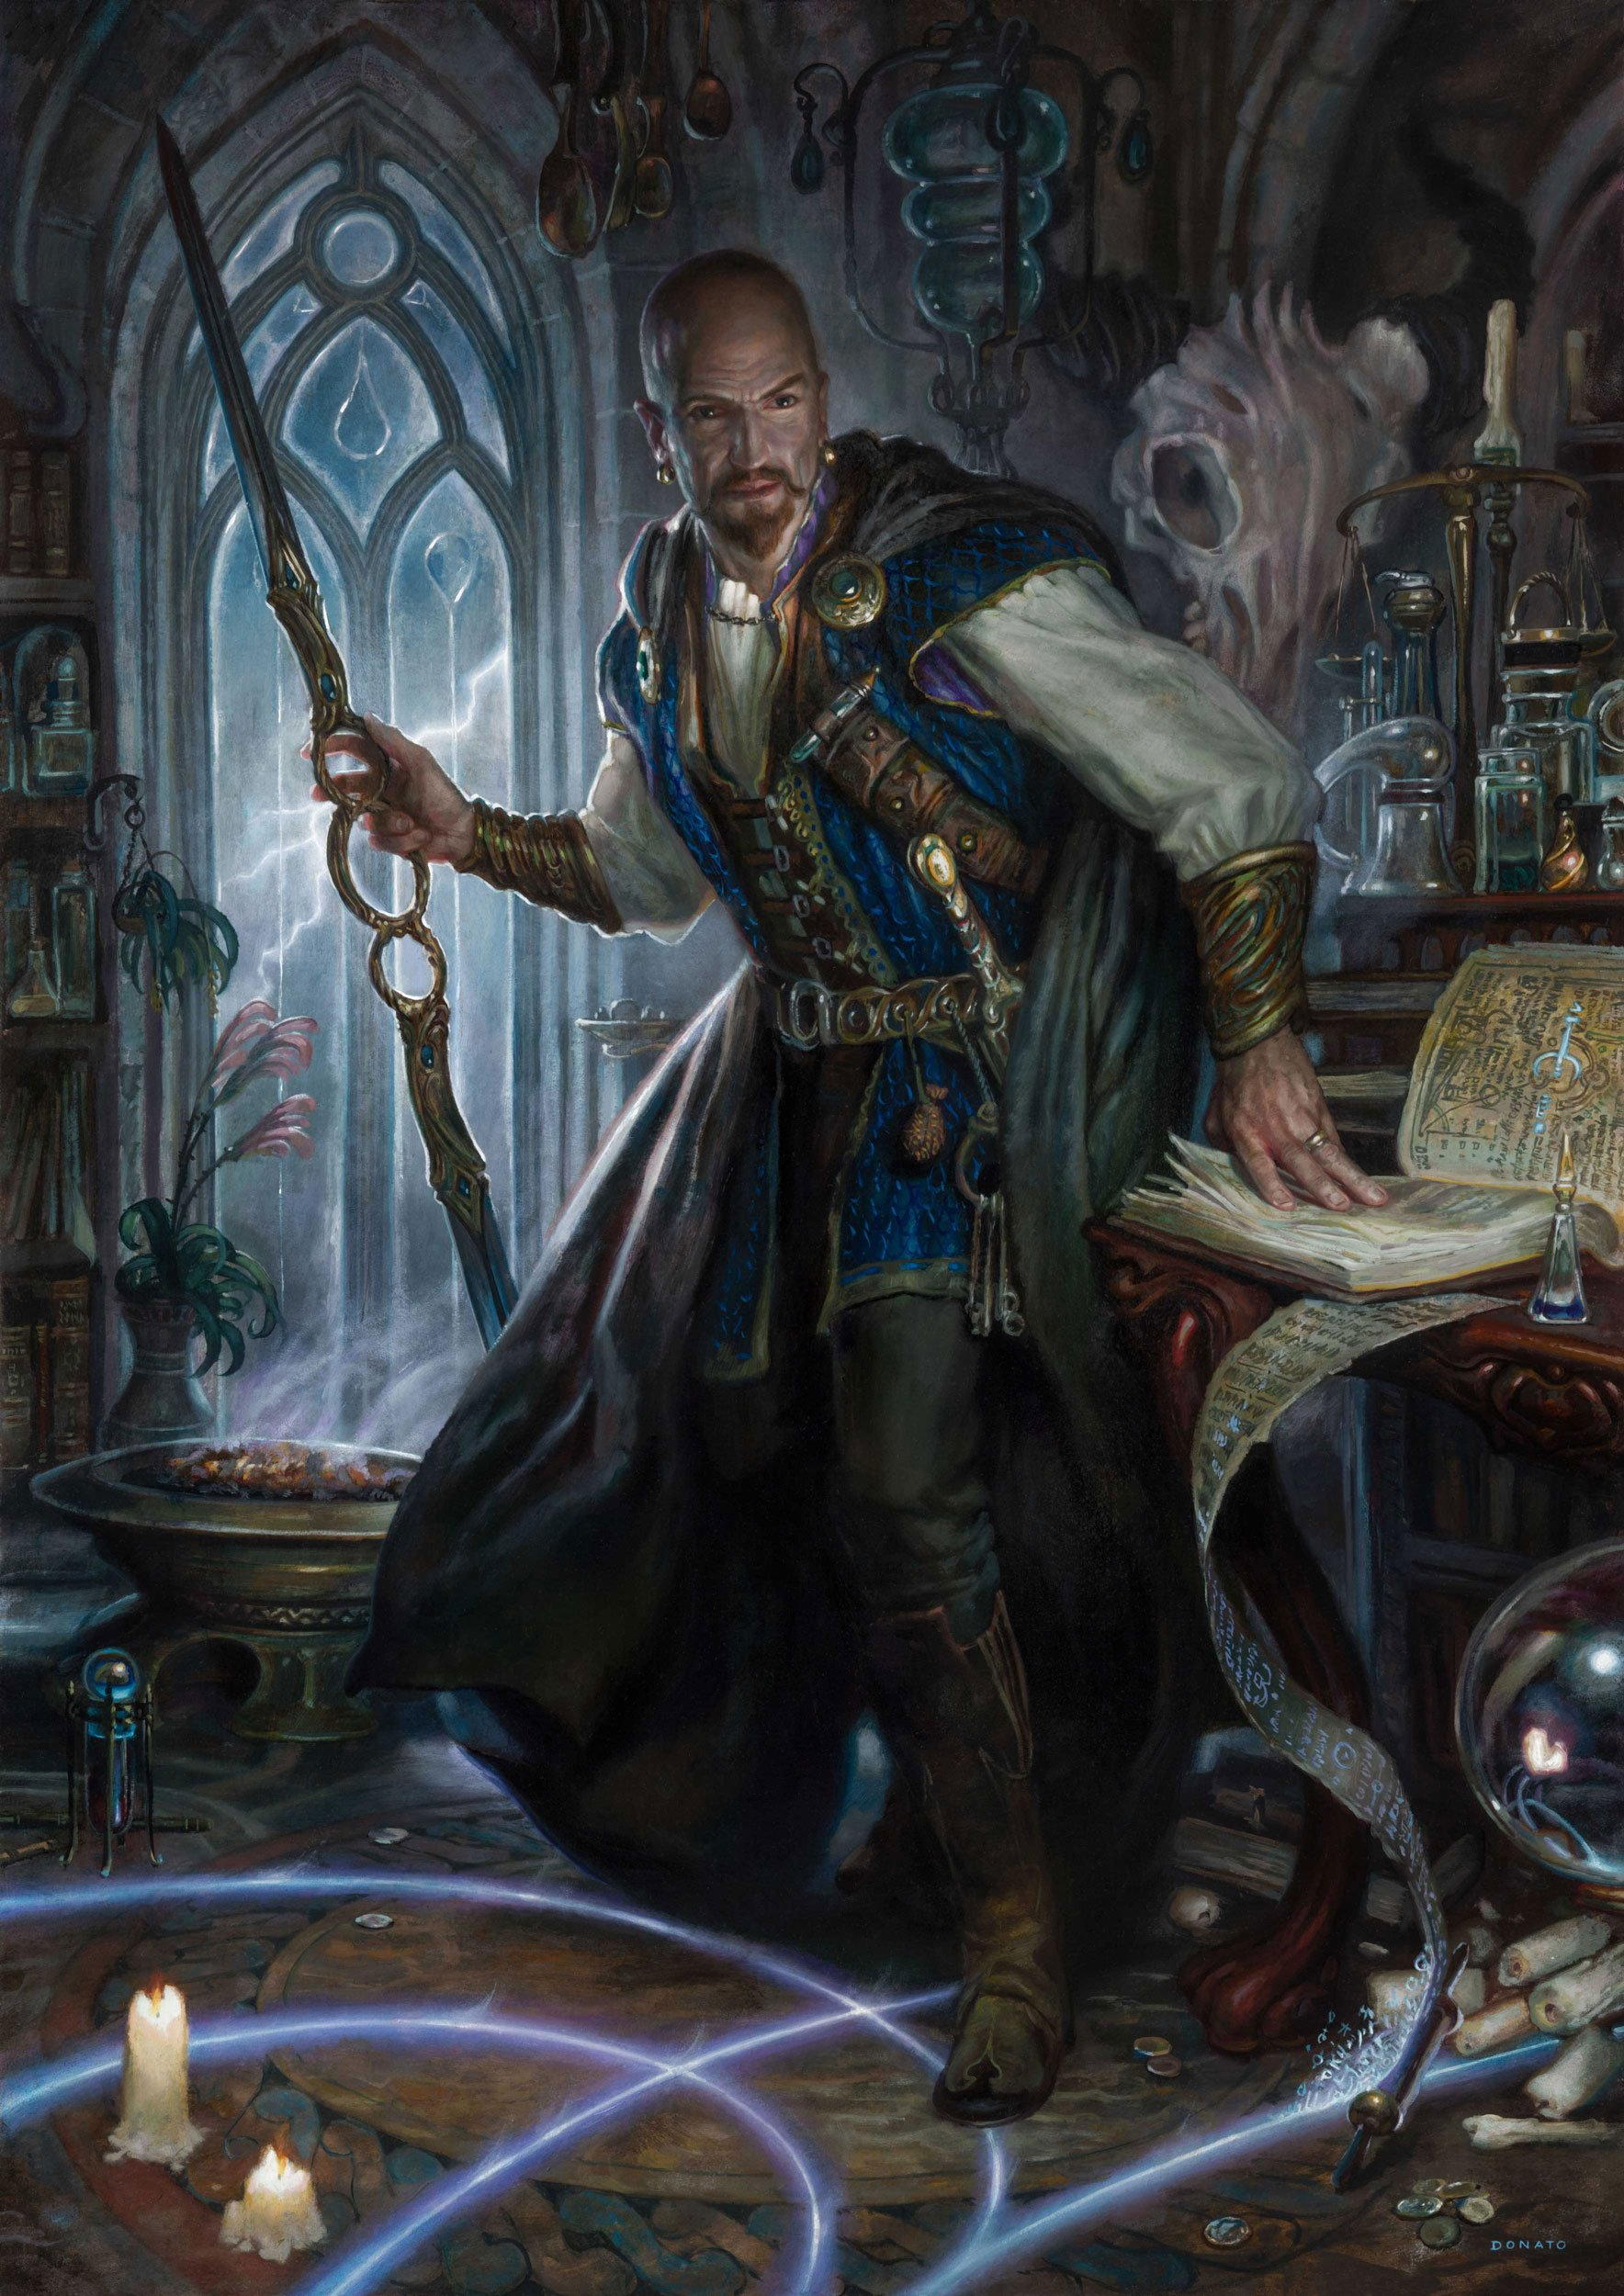 """Mordenkainen the Wizard Dungeons & Dragons Adventures in the Forgotten Realms 34"""" x 25""""  Oil on Panel 2020 private collection"""